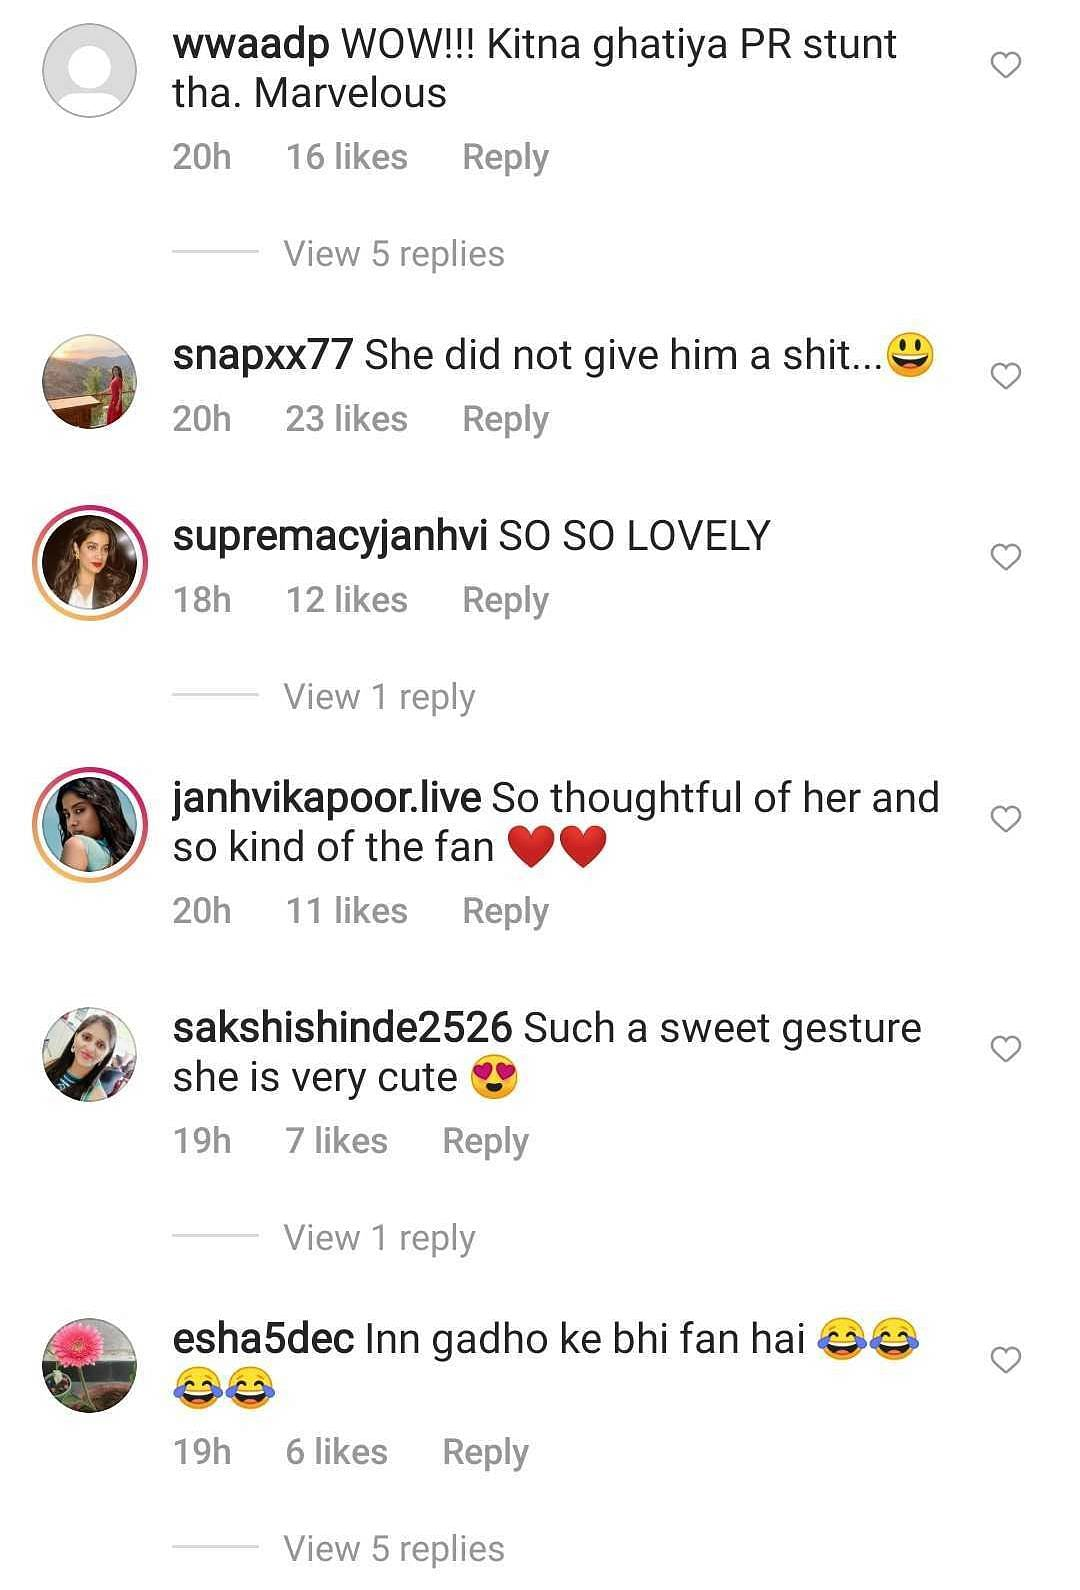 'Such a cold response': Janhvi Kapoor slammed for leaving a Rajasthani fan's gift on the floor - watch video